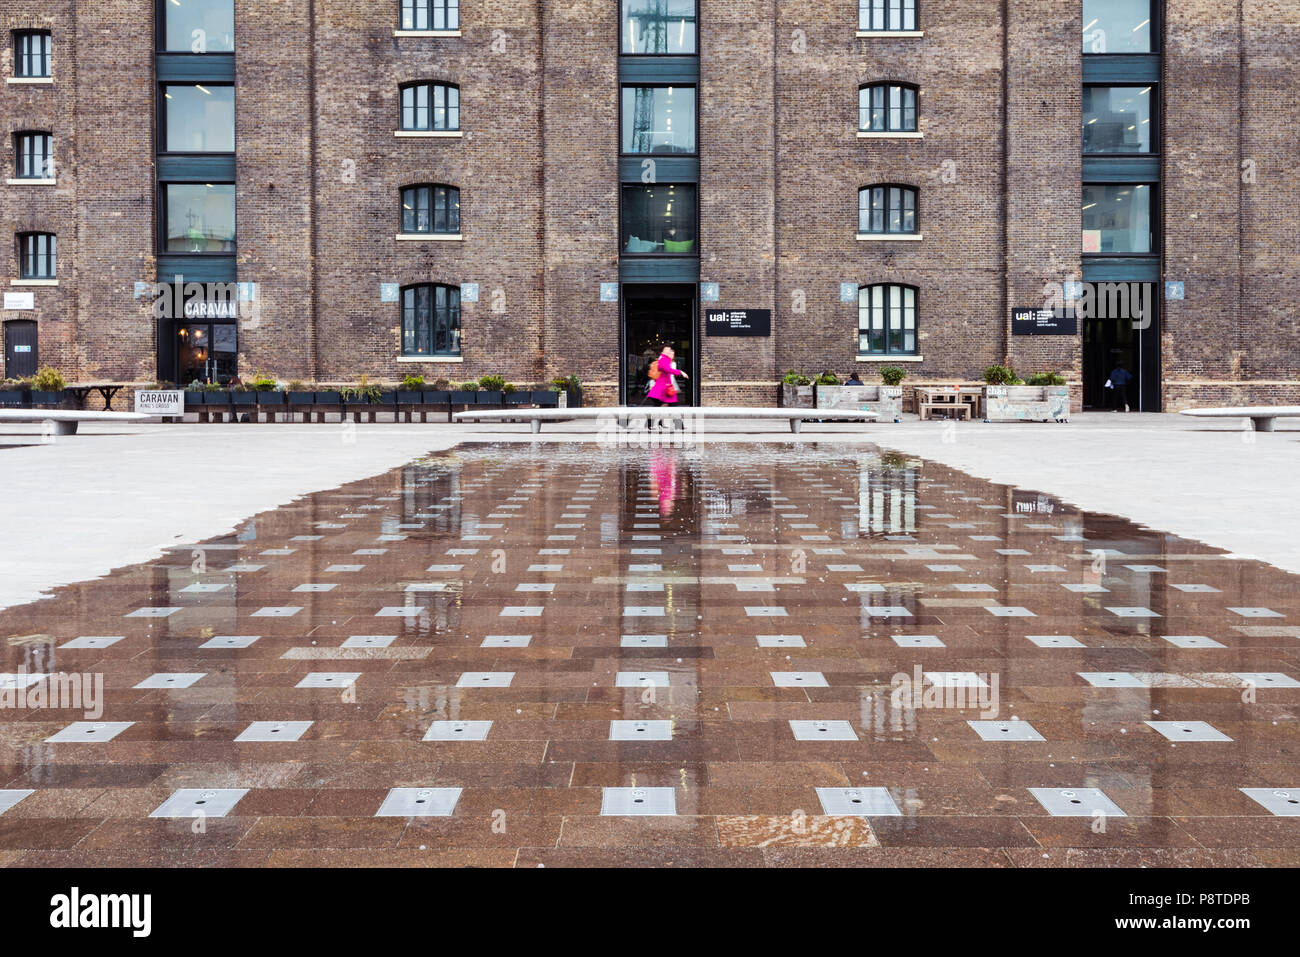 Low shooting angle of the University of the Arts London (UAL) in Granary Square, King's Cross, showing a woman in a pink coat positioned centrally - Stock Image